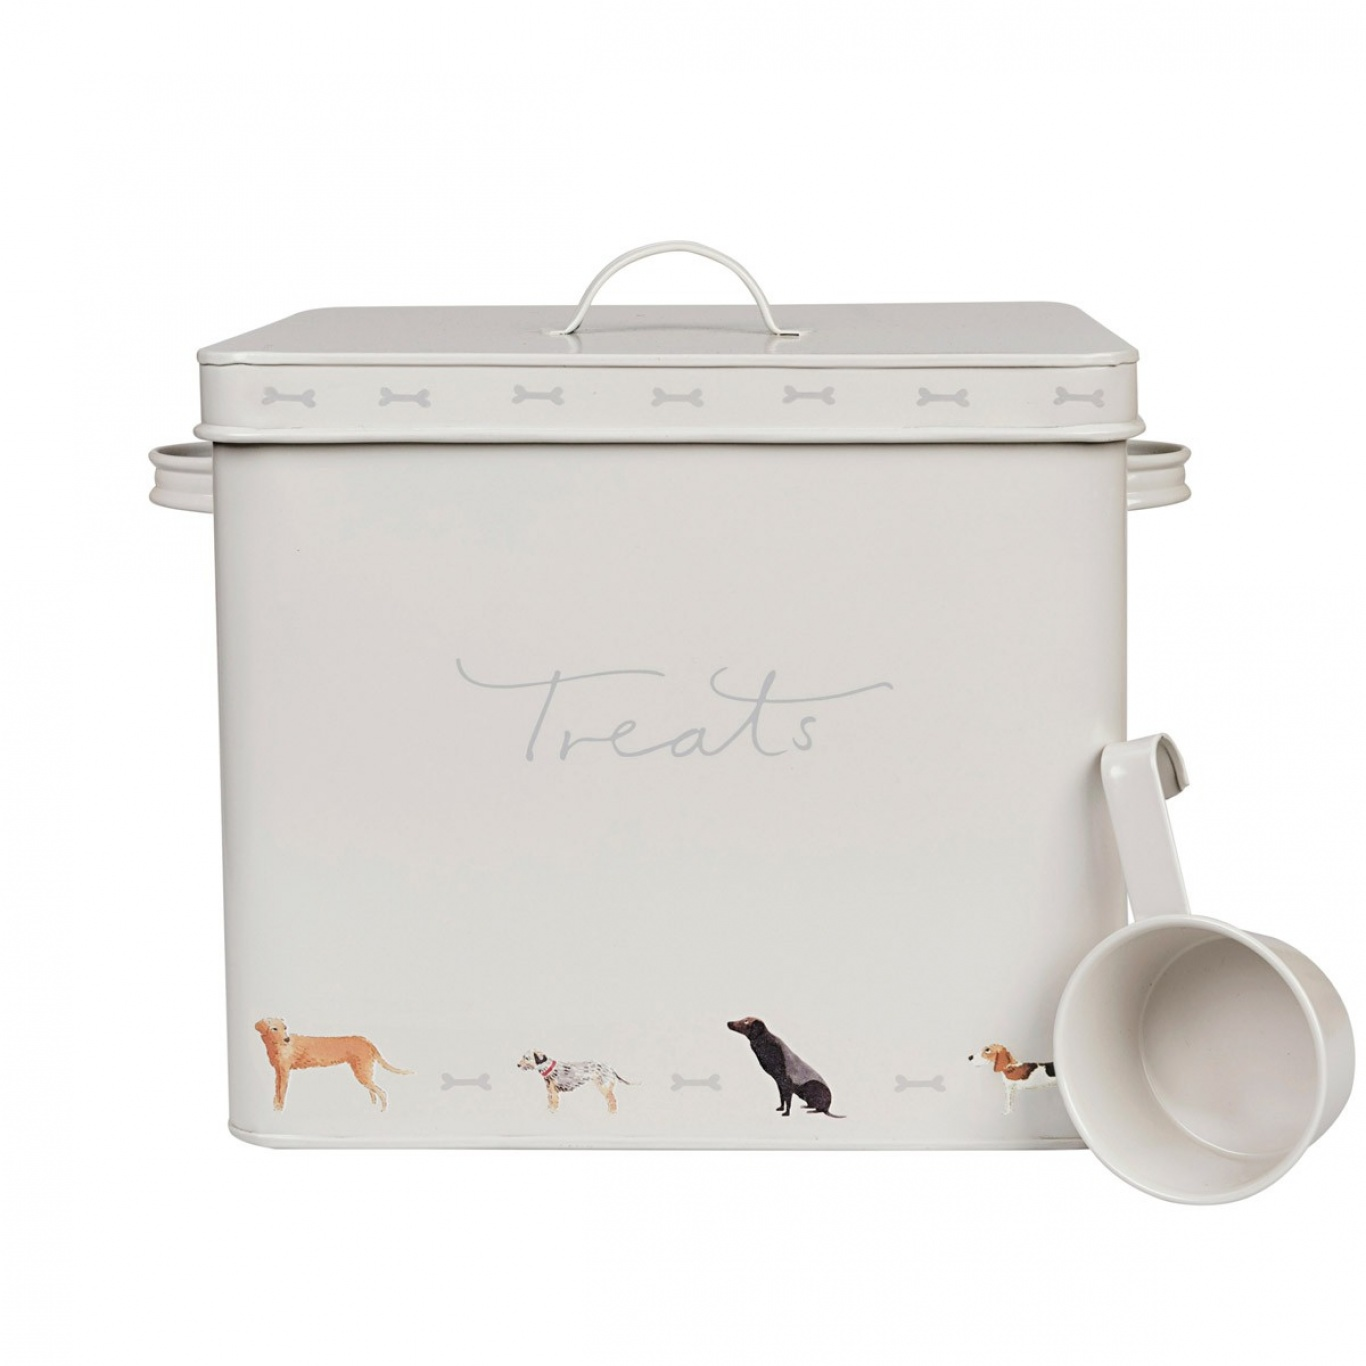 Image of Sophie Allport Dog Treat Tin - Woof!